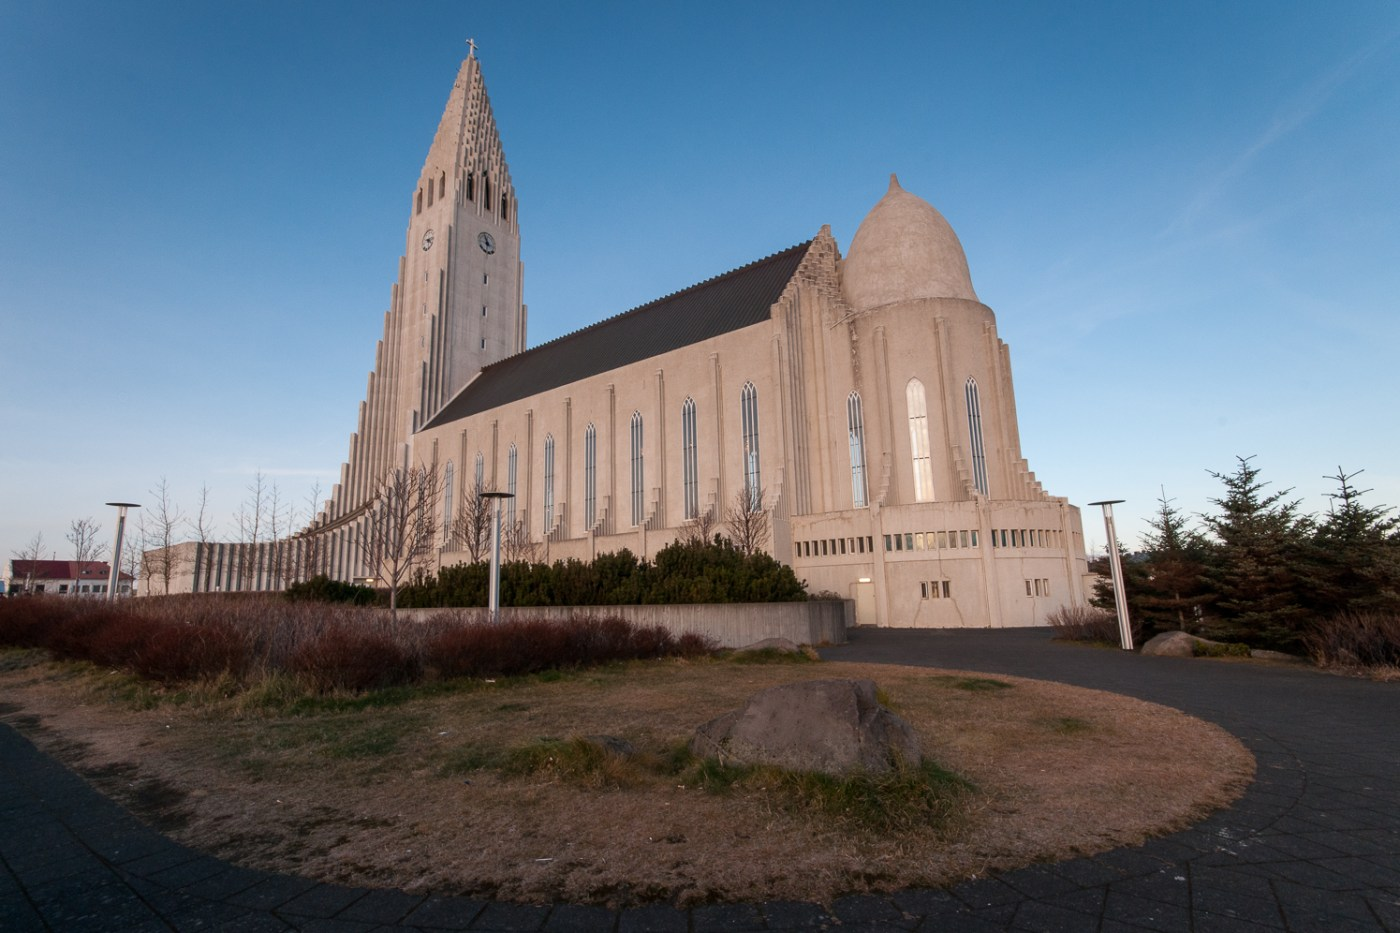 Hallgrimskirkja from the south side